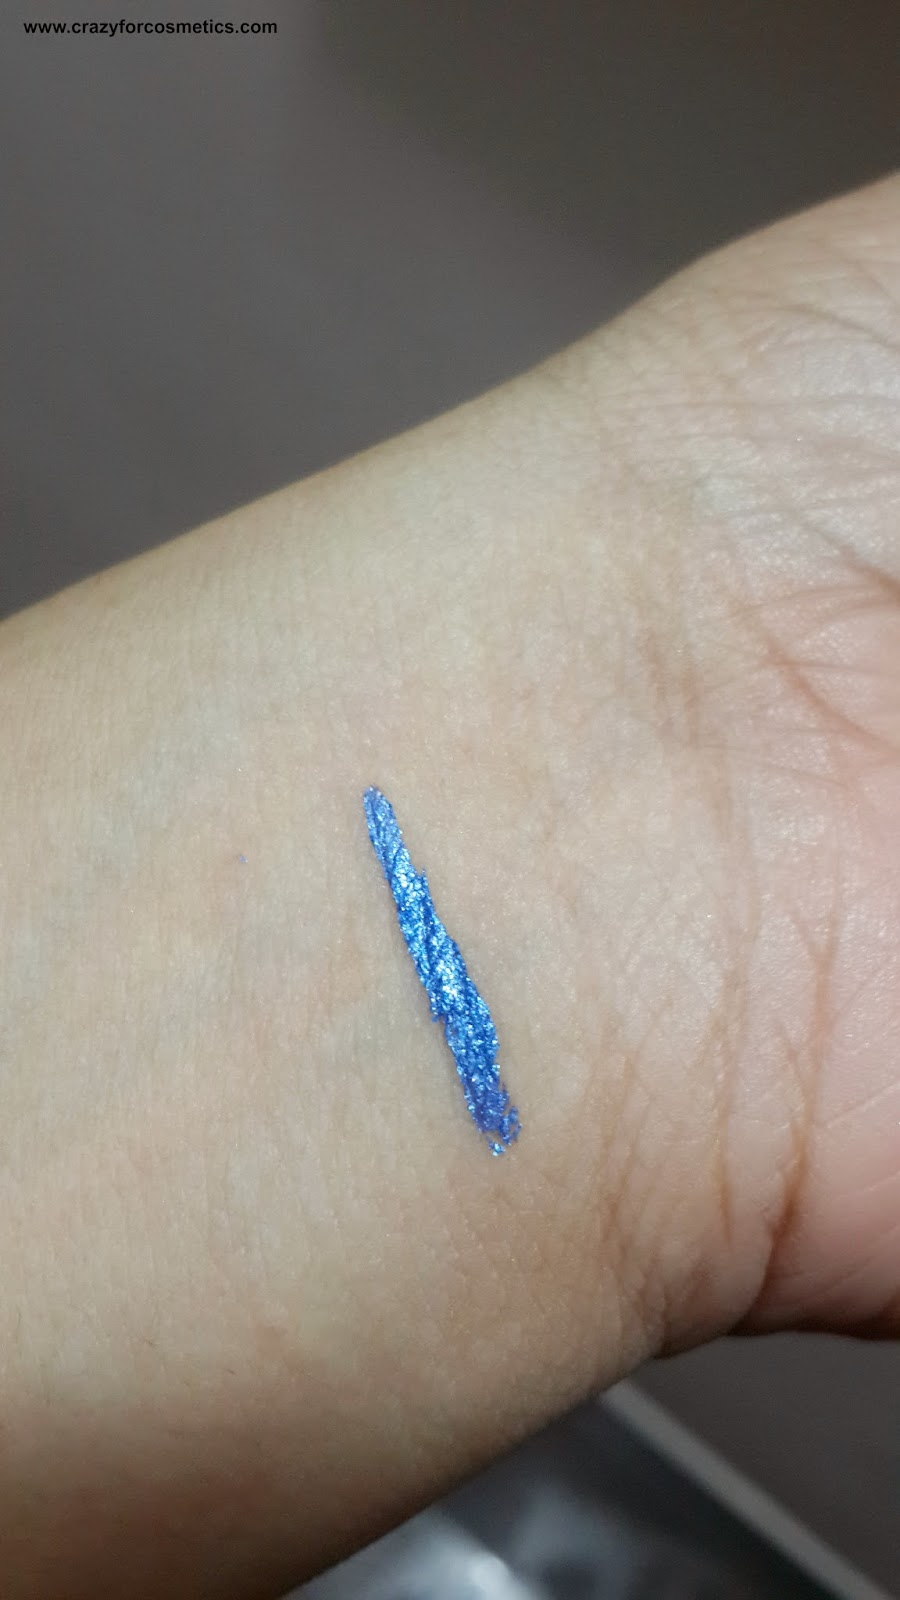 Lakme Fantasy Shimmer Liner in Glimmer Blue swatch-Lakme Fantasy Shimmer Liner in Glimmer Blue swatches-Lakme Fantasy Shimmer Liner in Glimmer Blue review